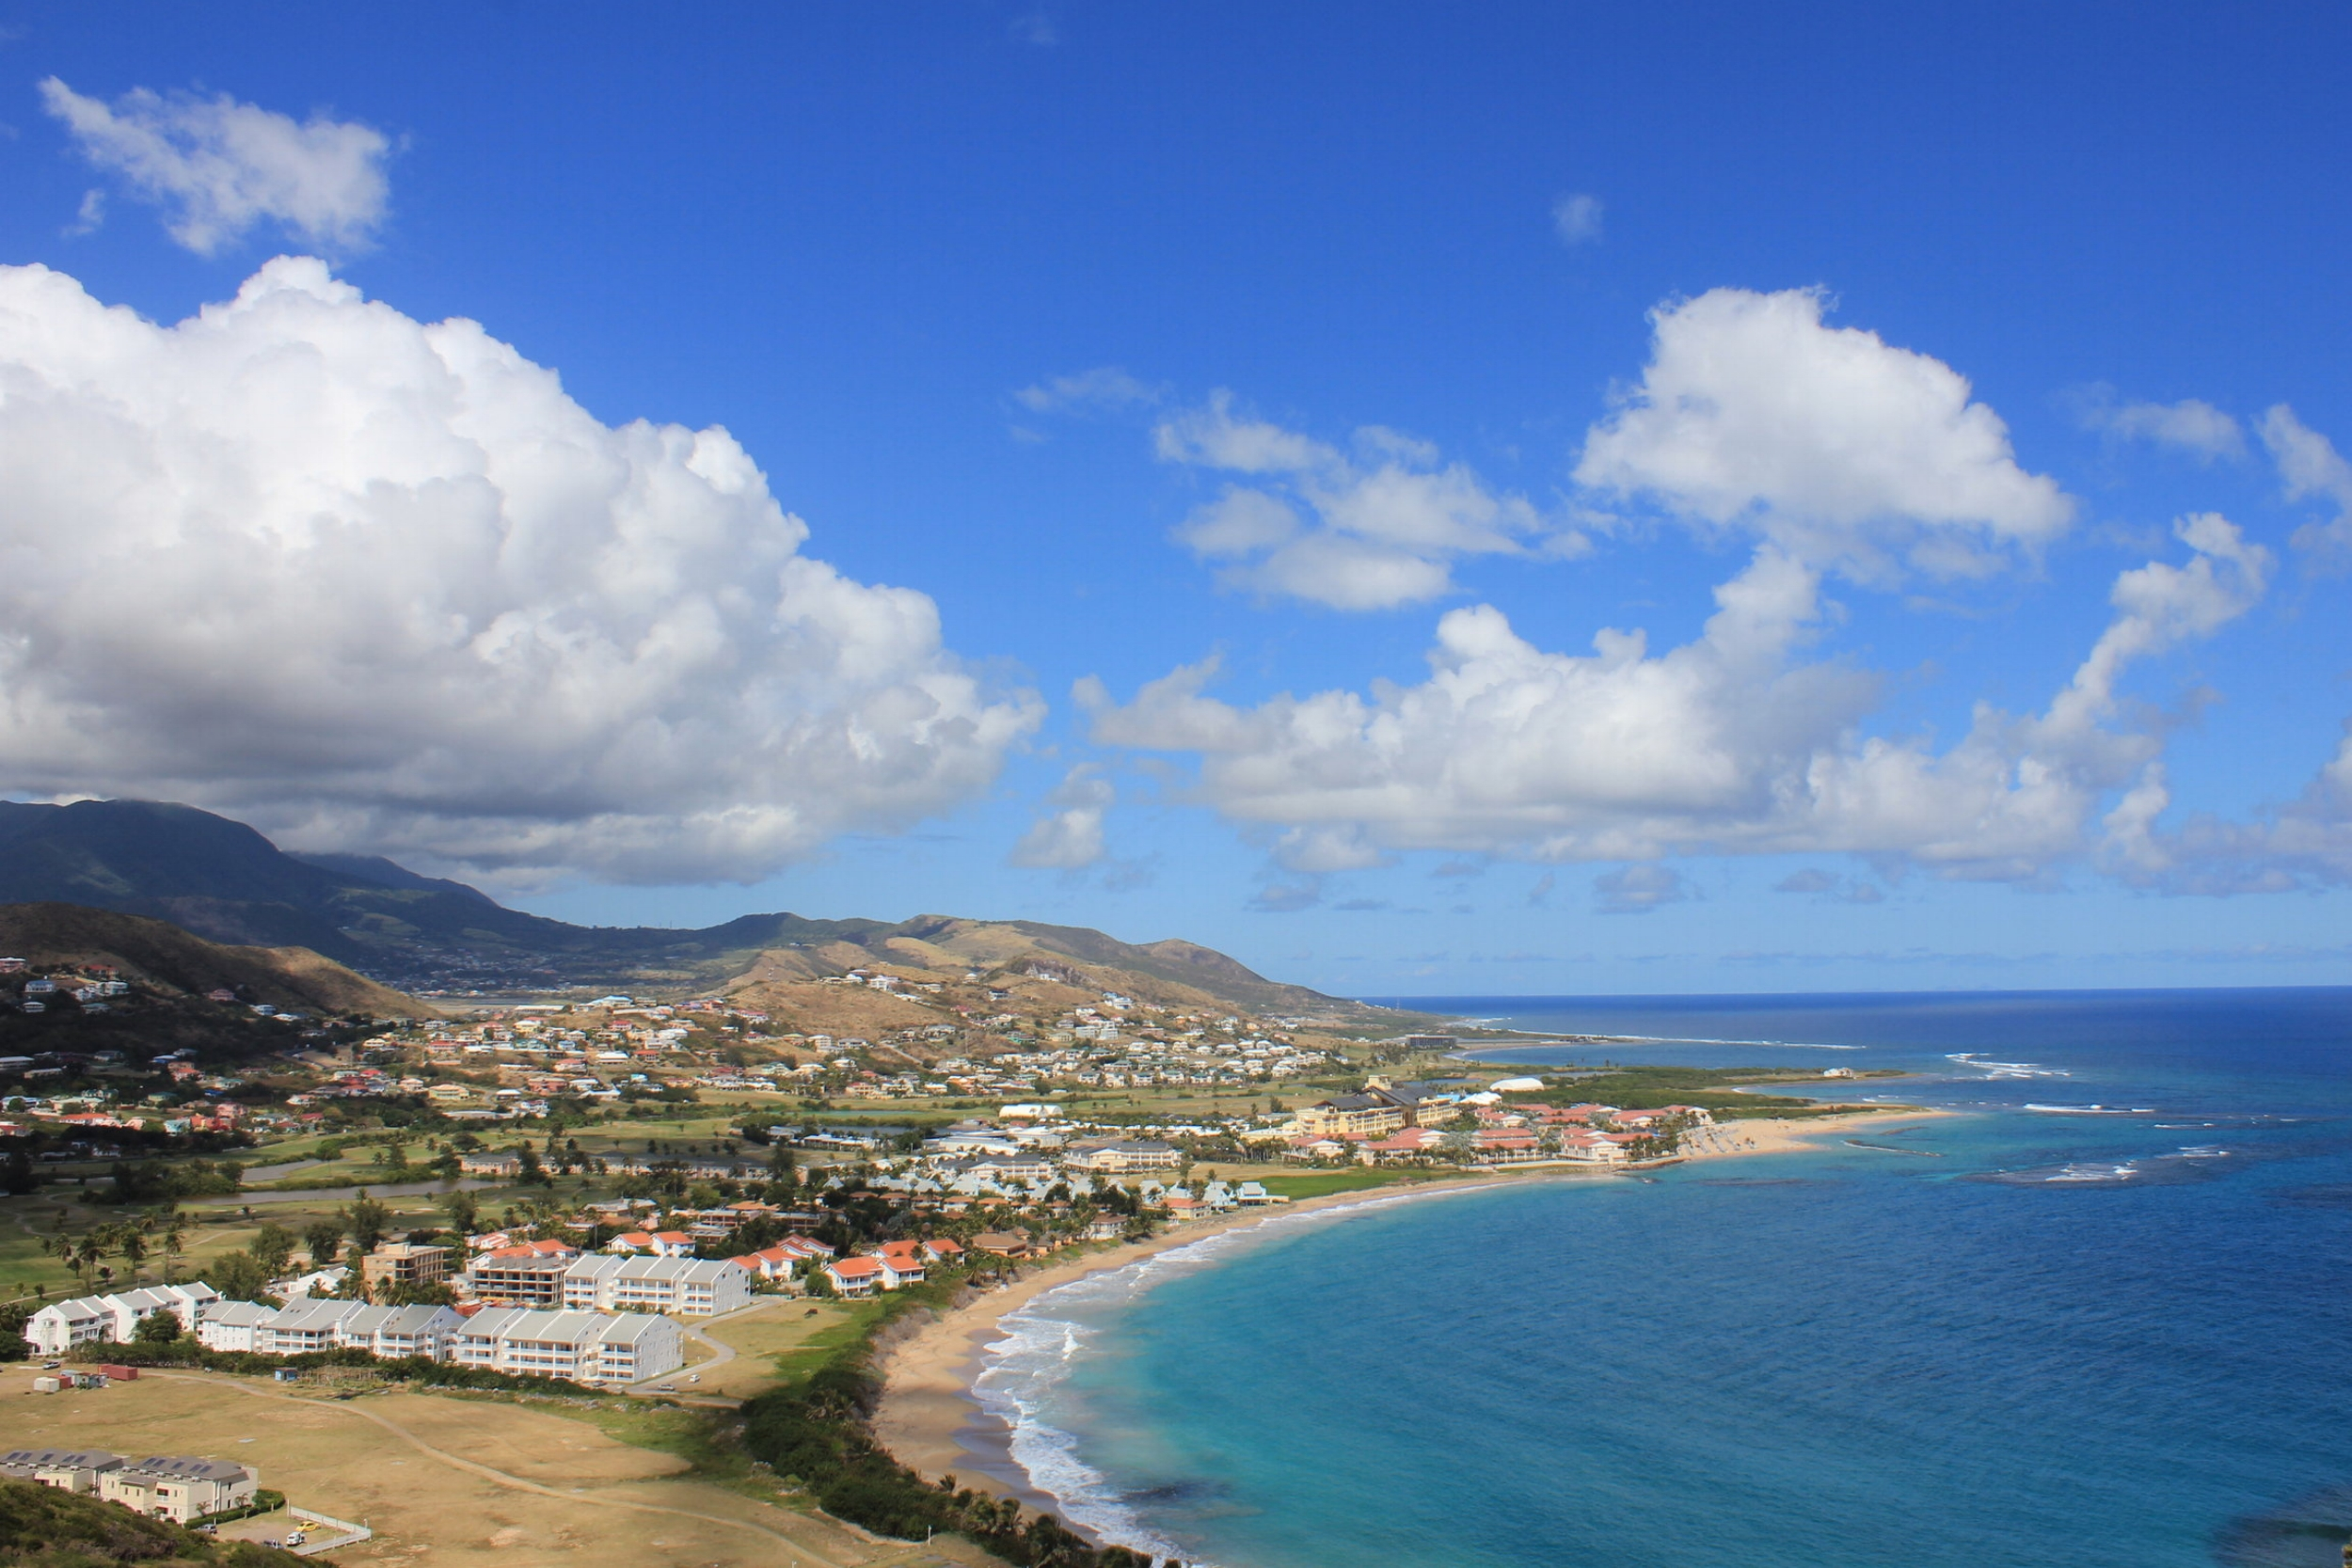 Sir Timothy's Hill – View of the Marriott Resort St. Kitts